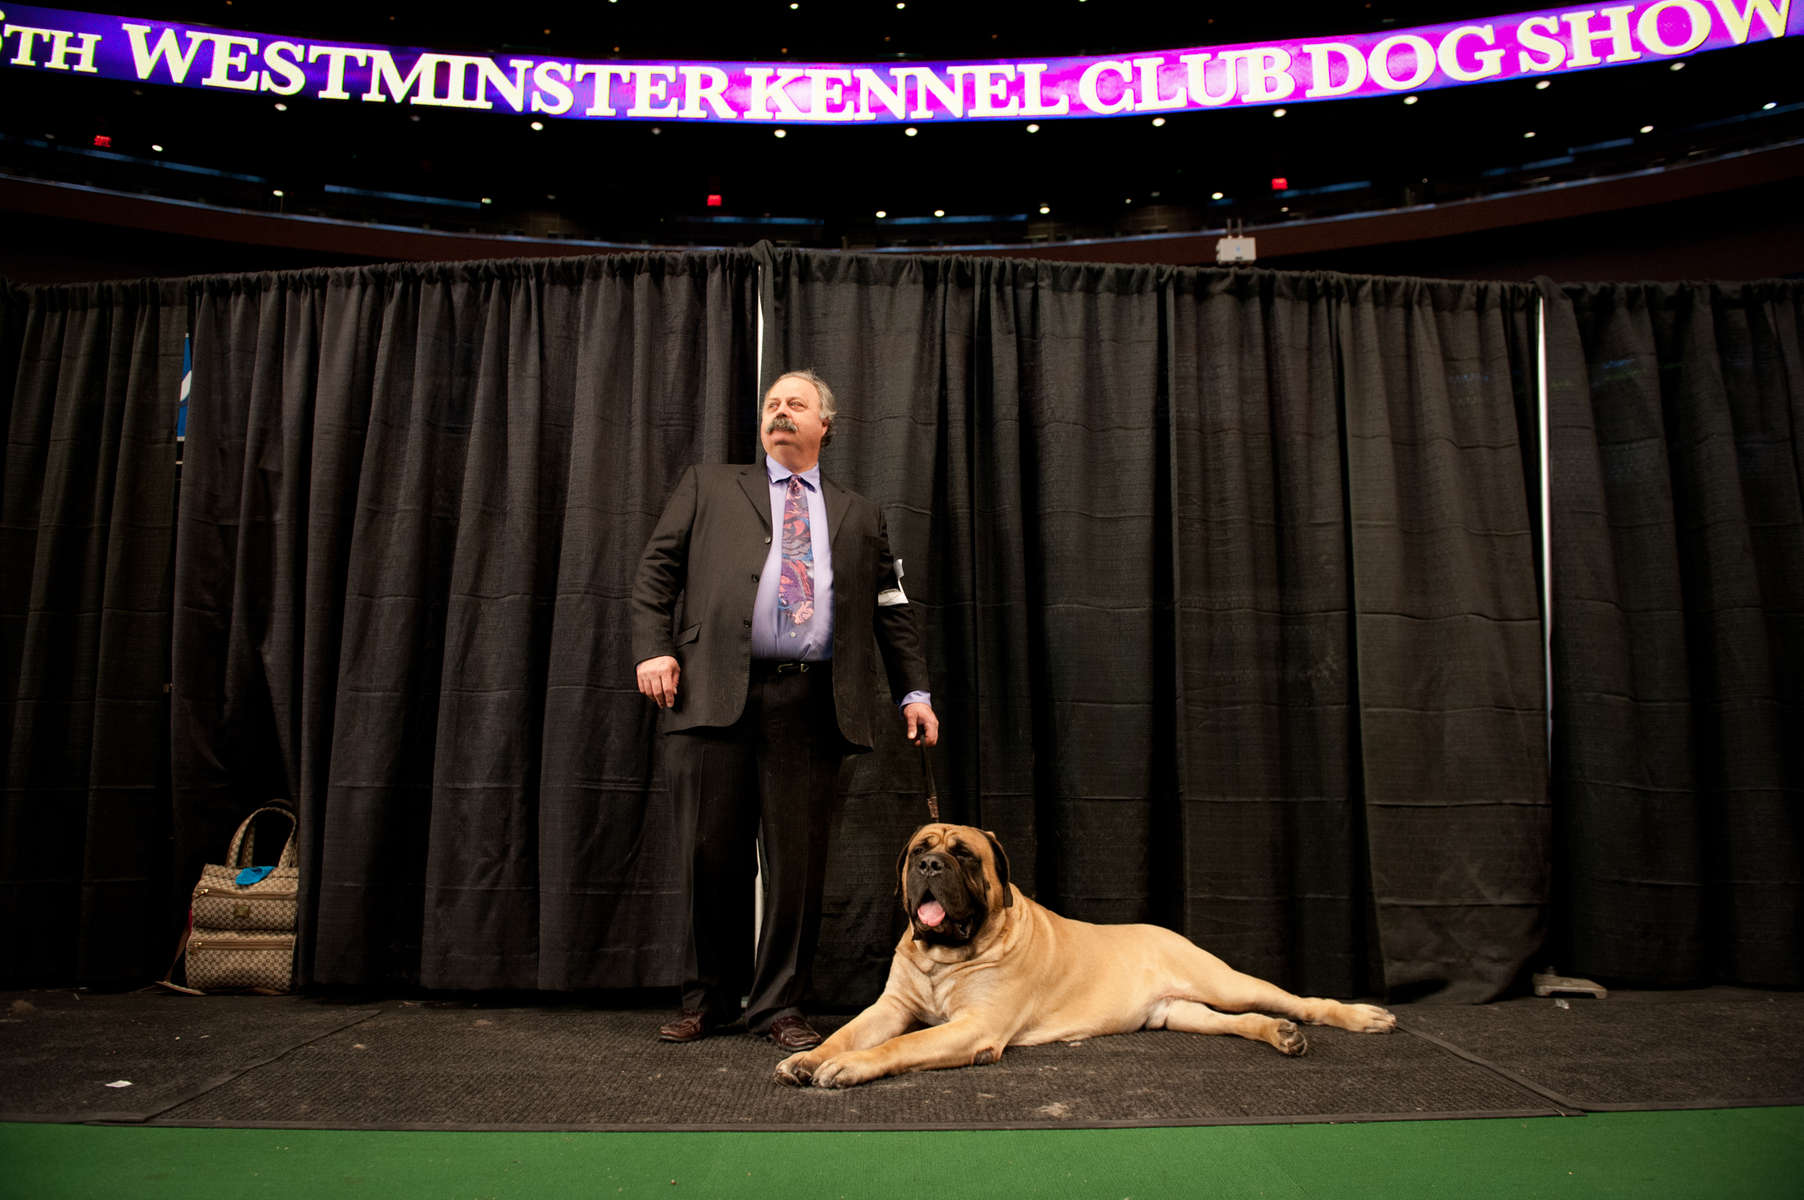 Handler Lonnie Schwab stands in Madison Square Garden at the 136th Westminster Kennel Club Dog Show in Manhattan with Baron, the five-year old English Mastiff, weighing in at 220 pounds. (Feb 14, 2012) Photo by Nancy Borowick